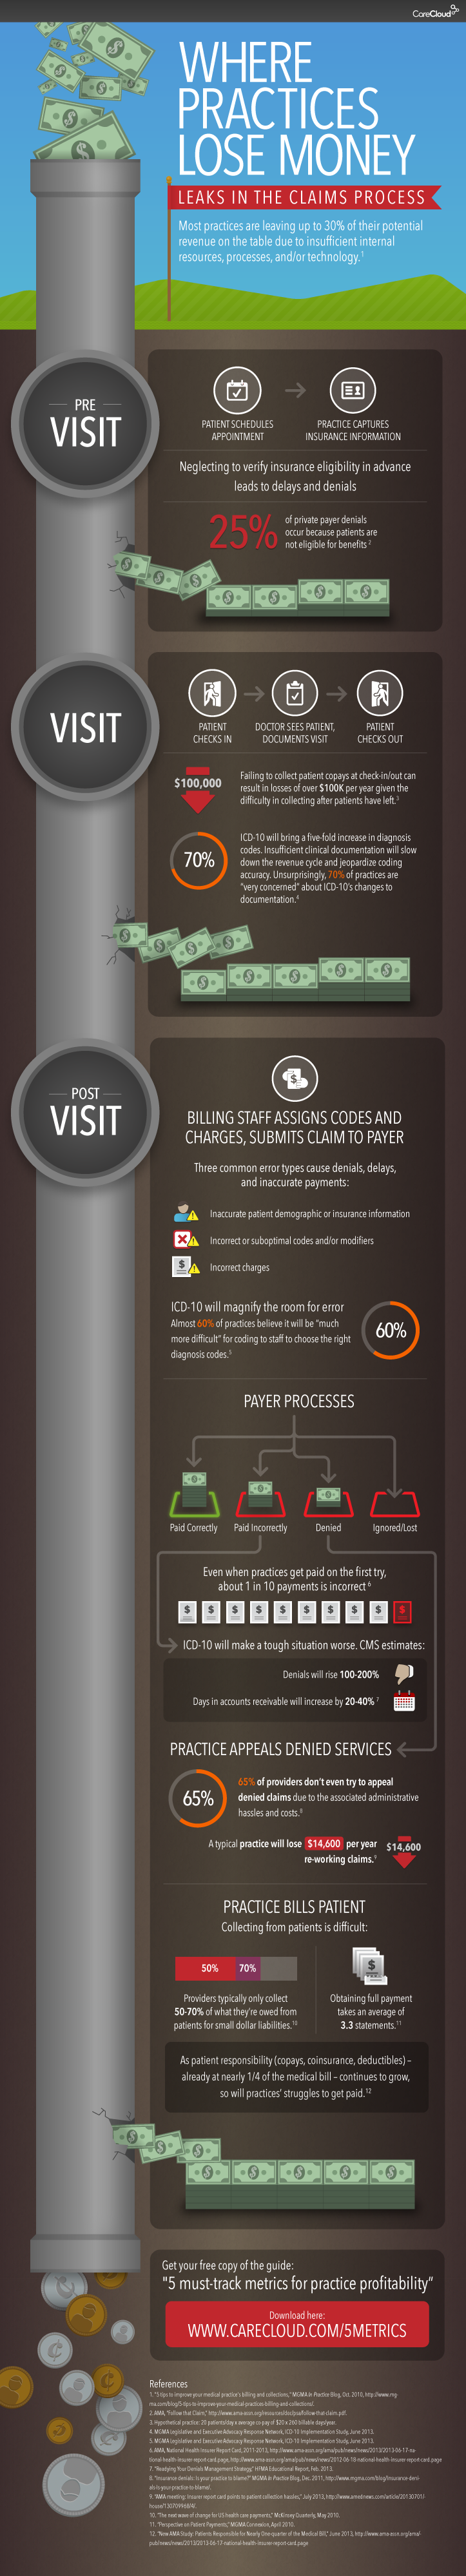 CareCloud leaky RCM infographic